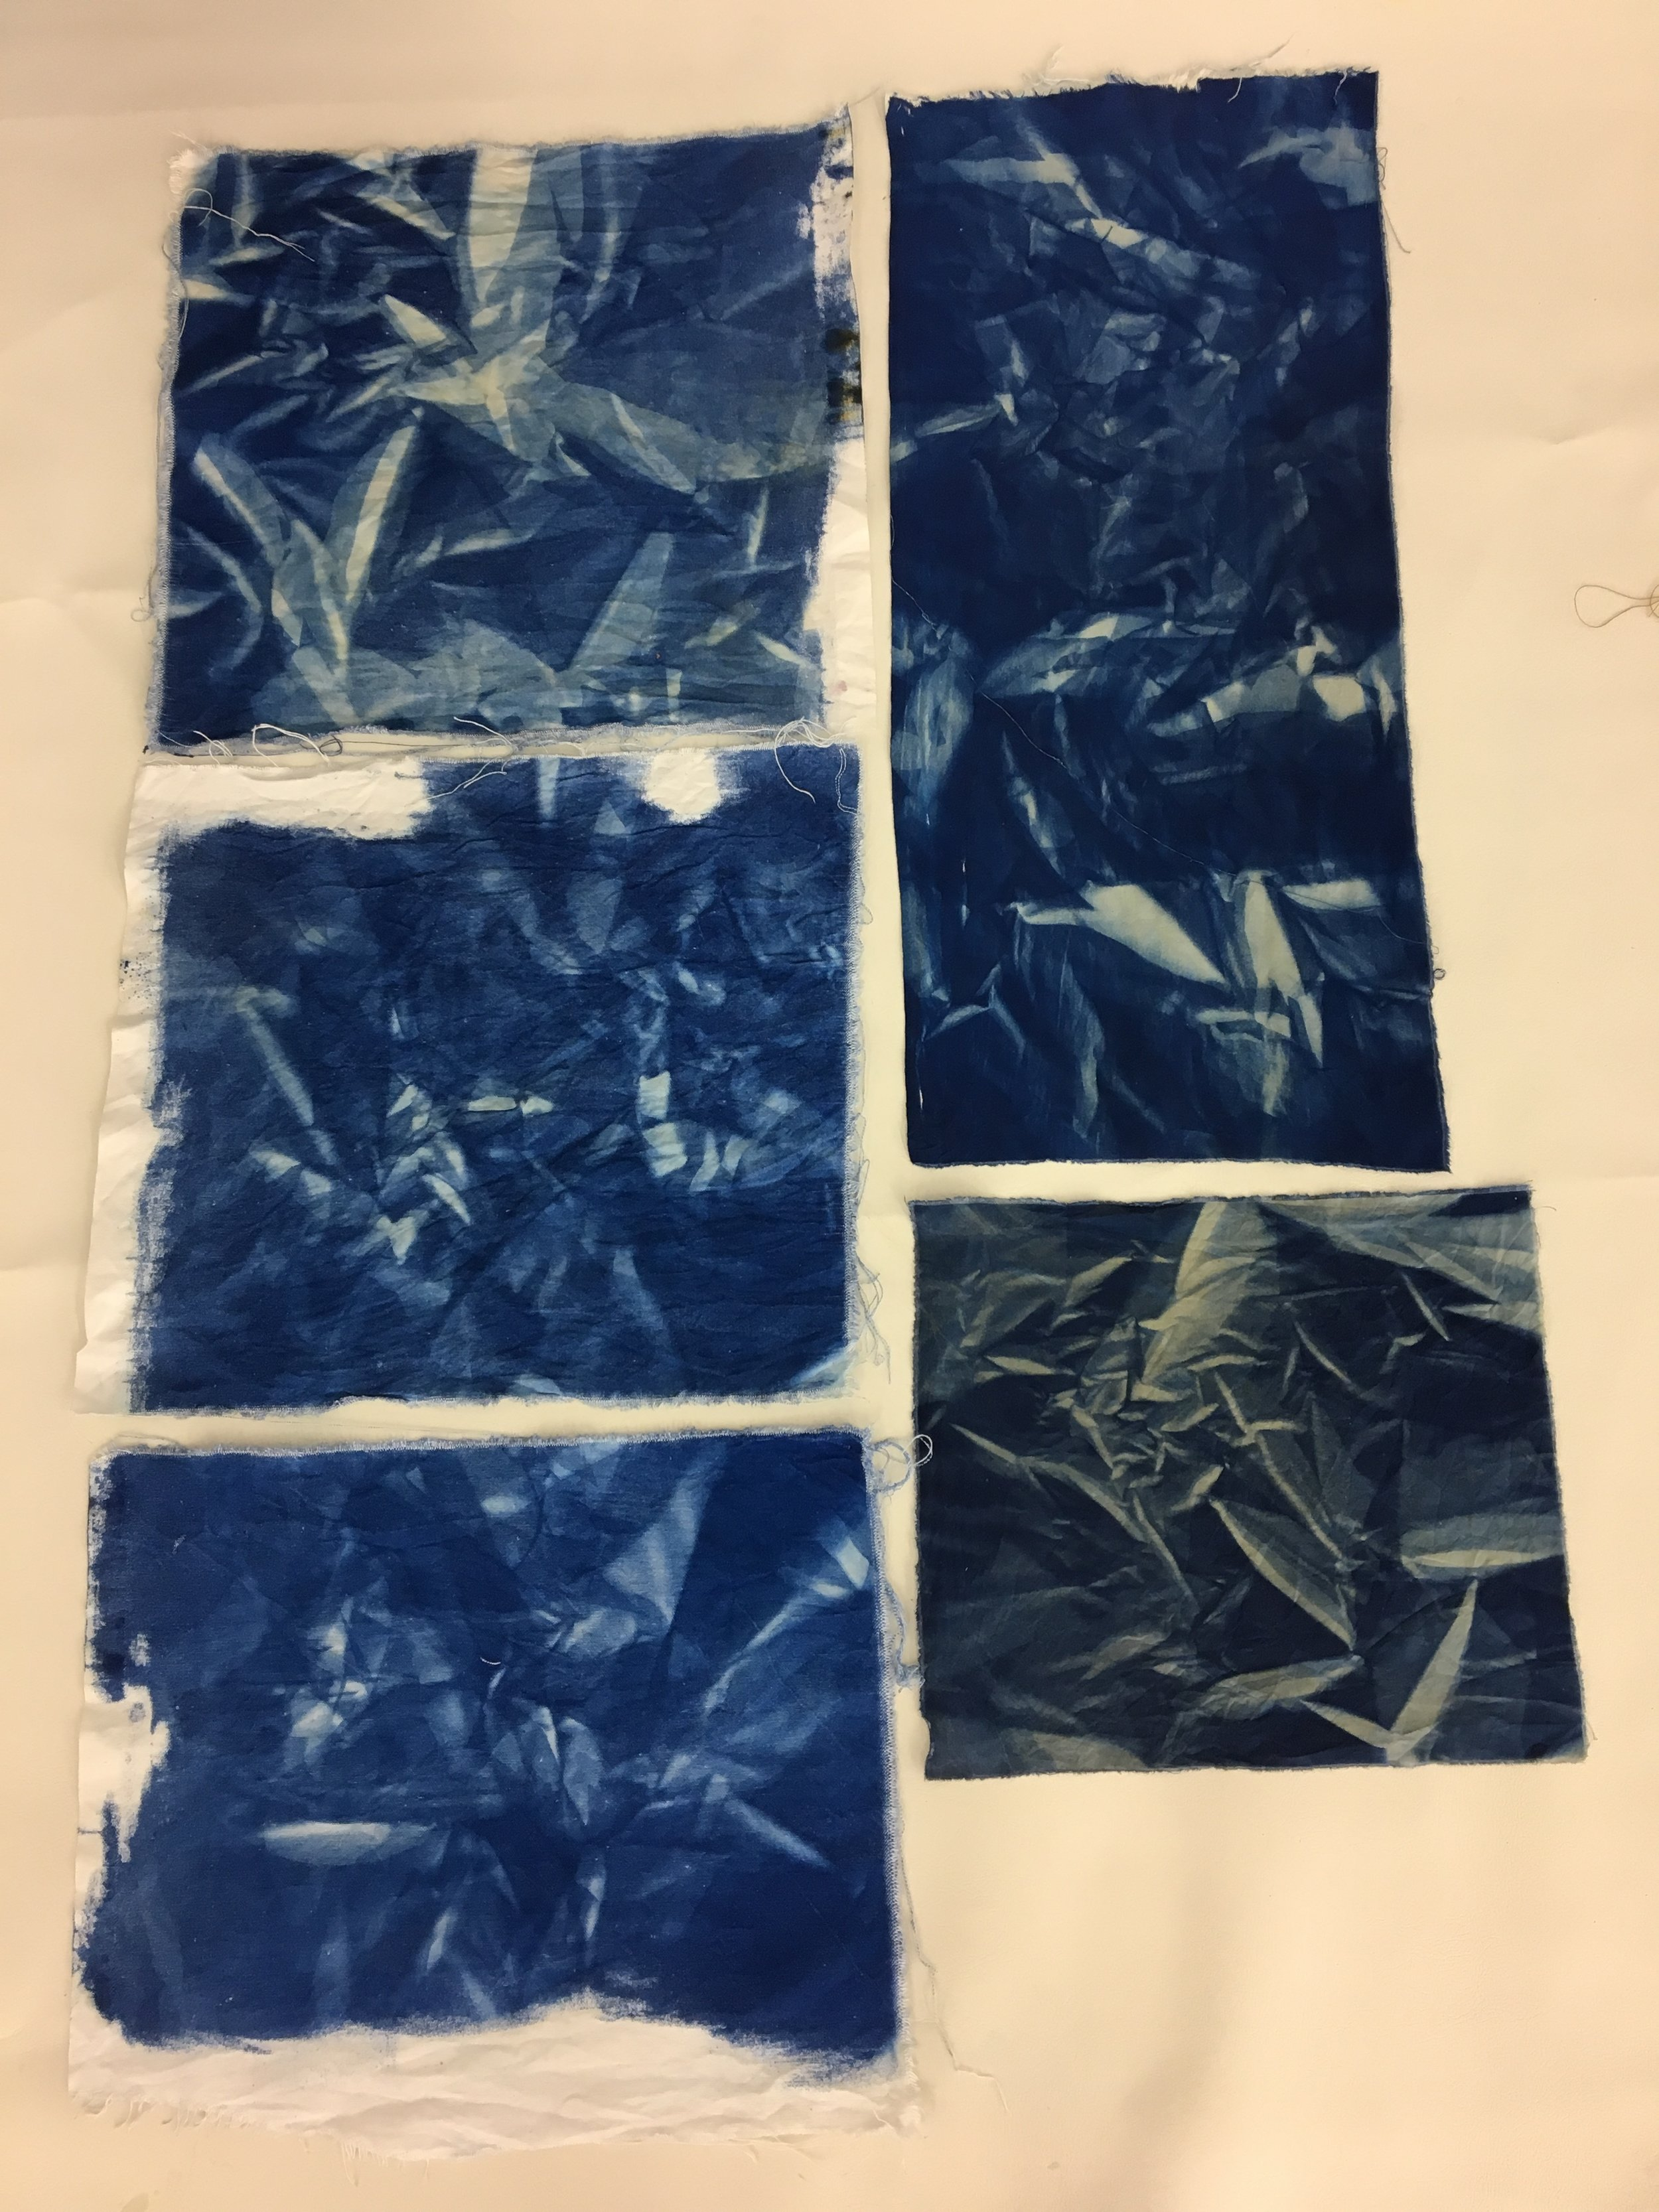 My favorite process ended up being this -- folding the fabric up and pressing under a piece of glass. The effect has so much depth and texture!